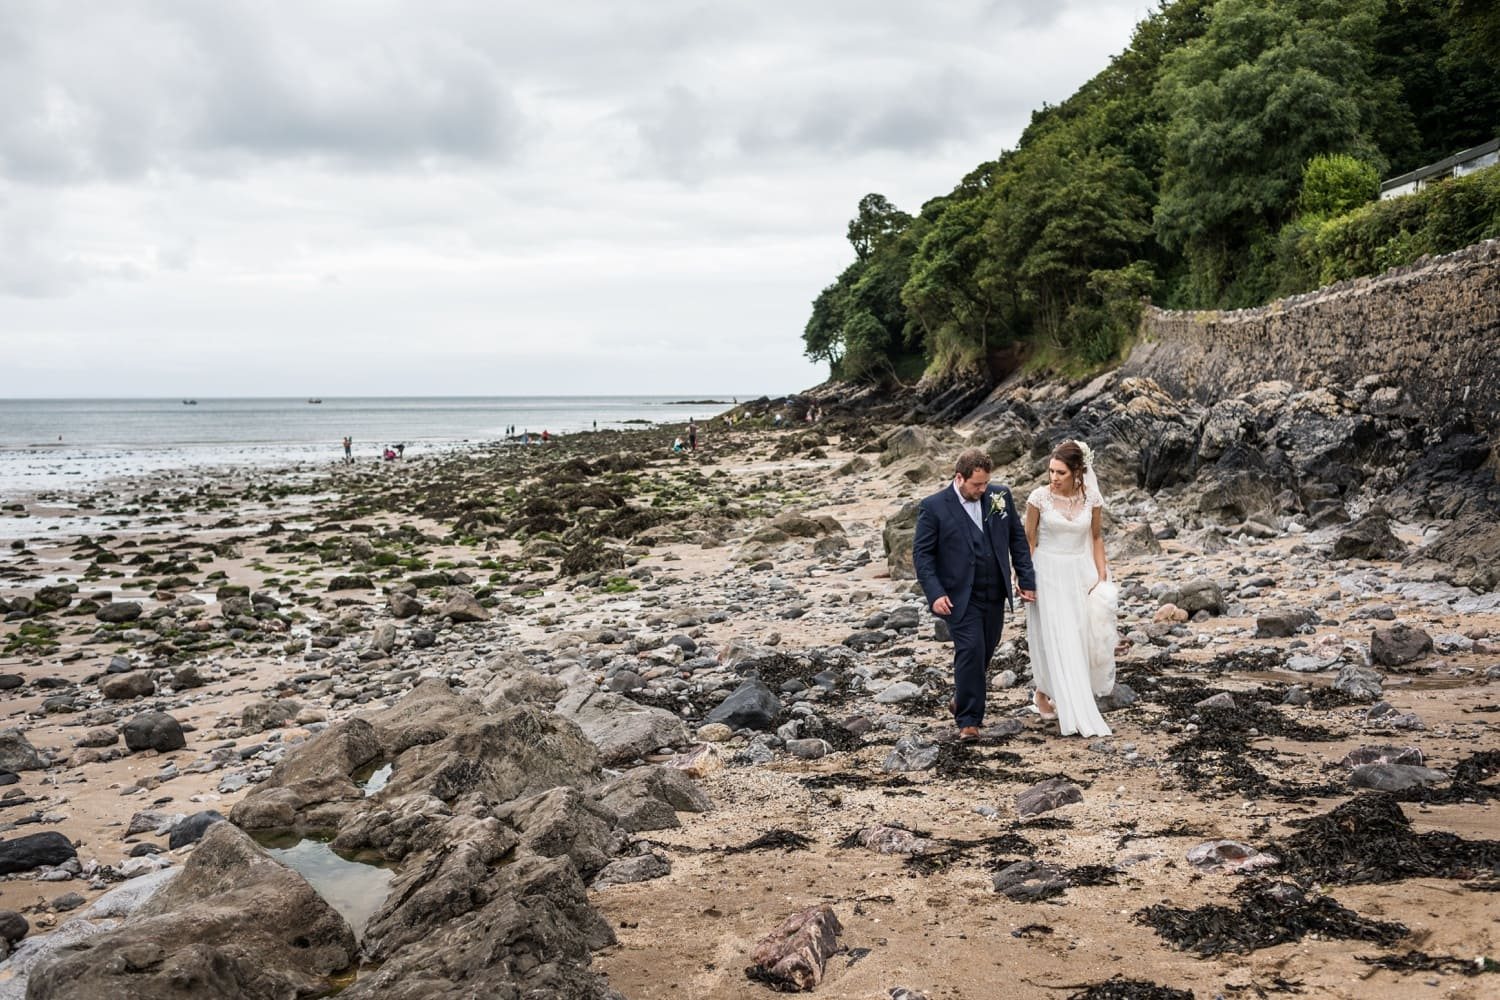 Oxwich Bay Wedding 290717038